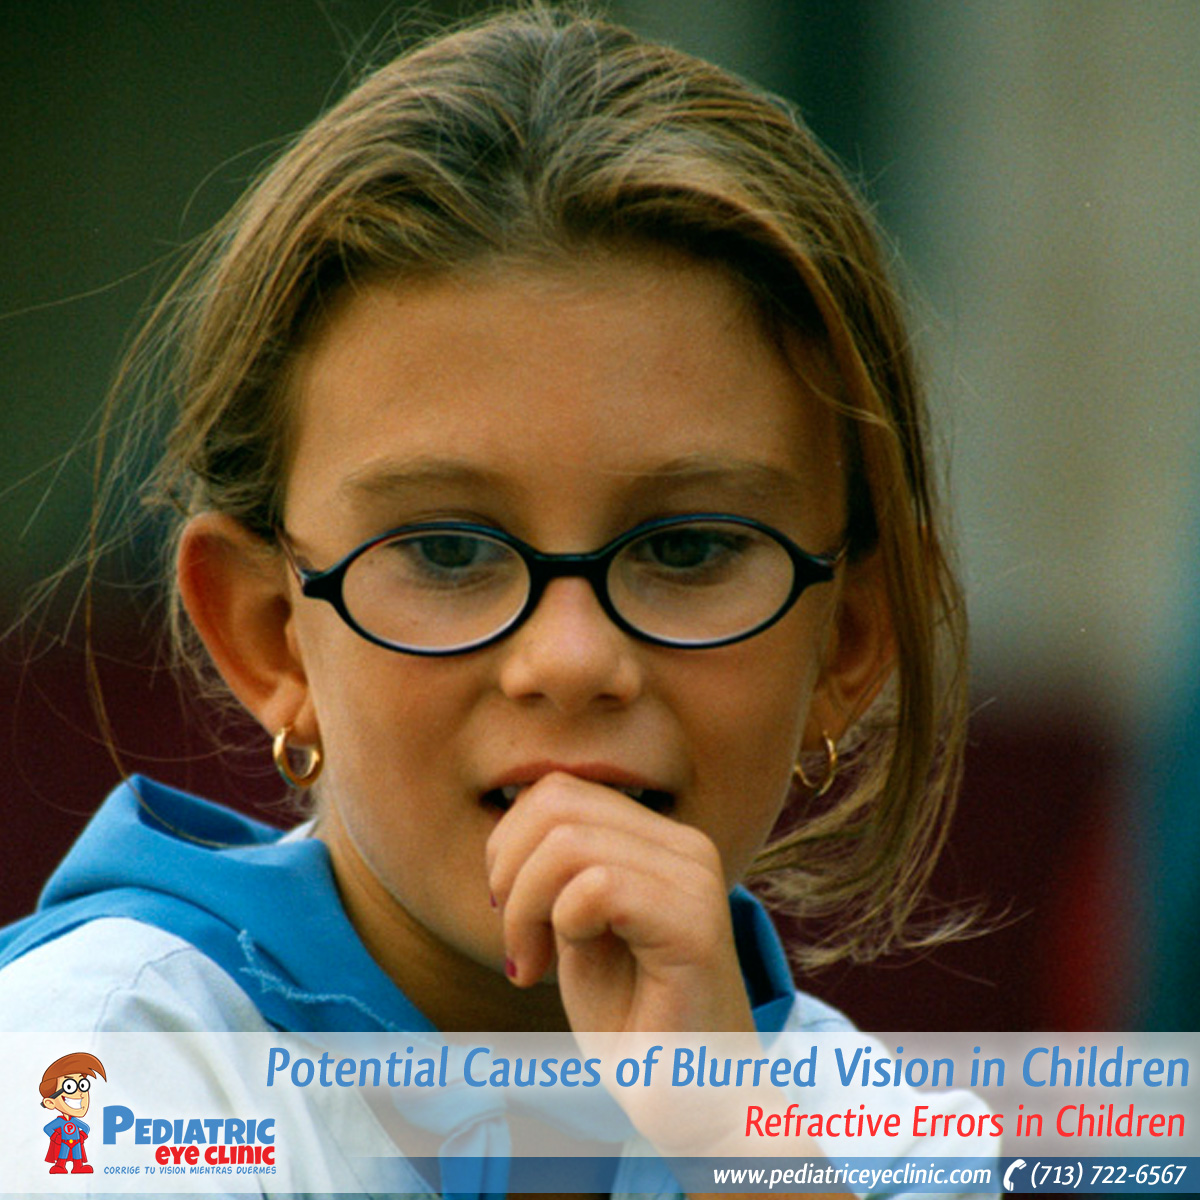 27-potential-causes-of-blurred-vision-in-children